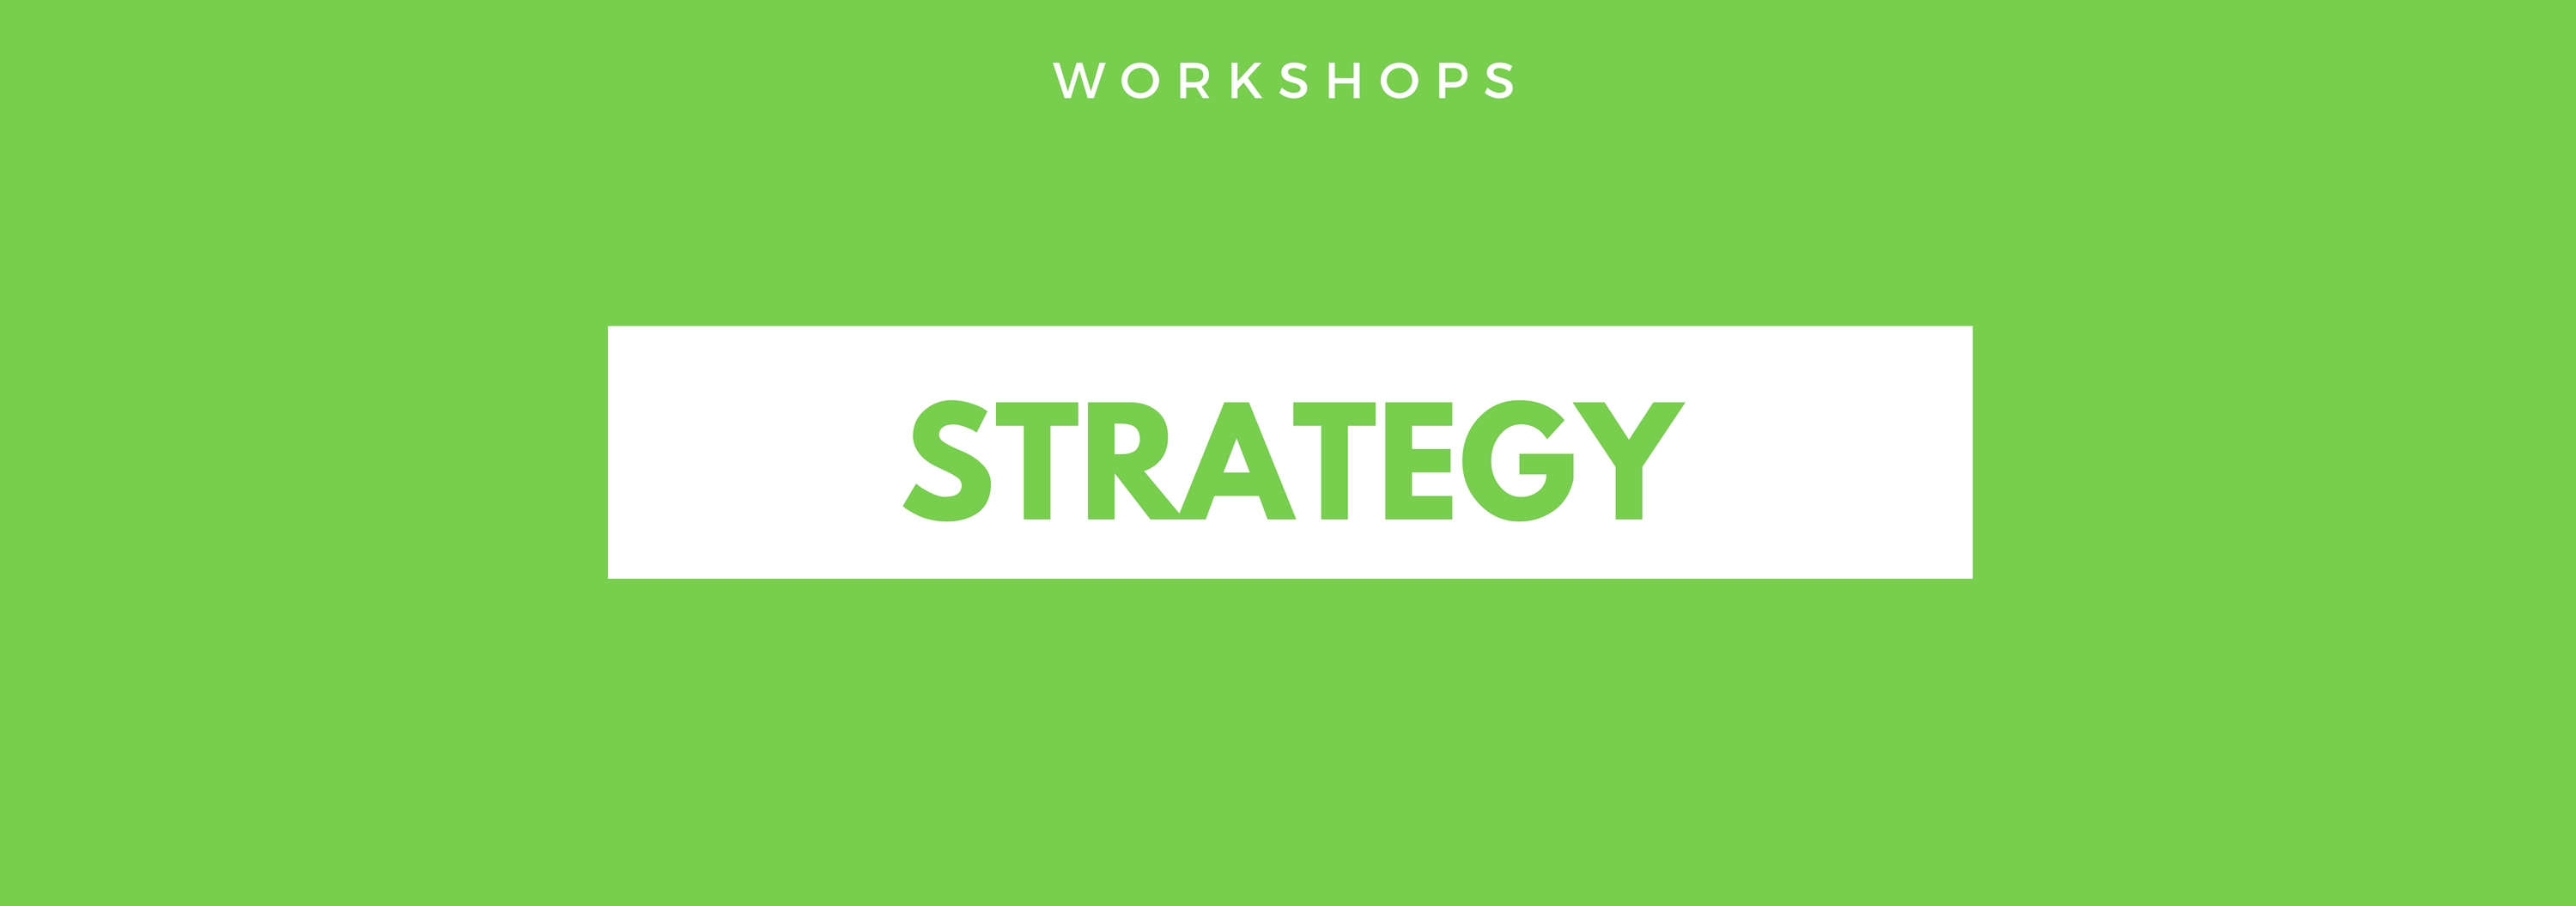 Strategy Design Workshop Using The Business Model Canvas with Business Models Inc.